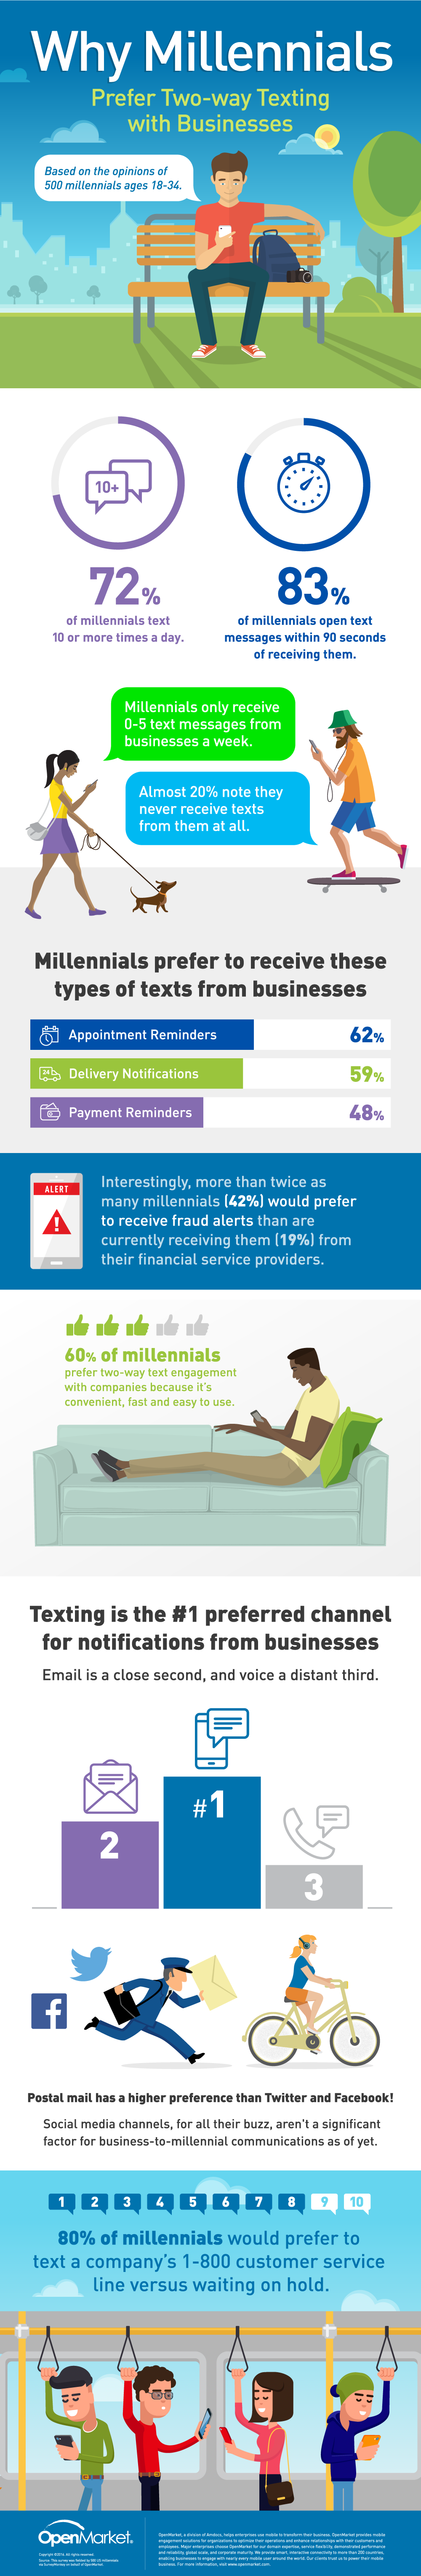 Why Millennials Prefer Two-Way Texting with Businesses [Infographic] | Social Media Today